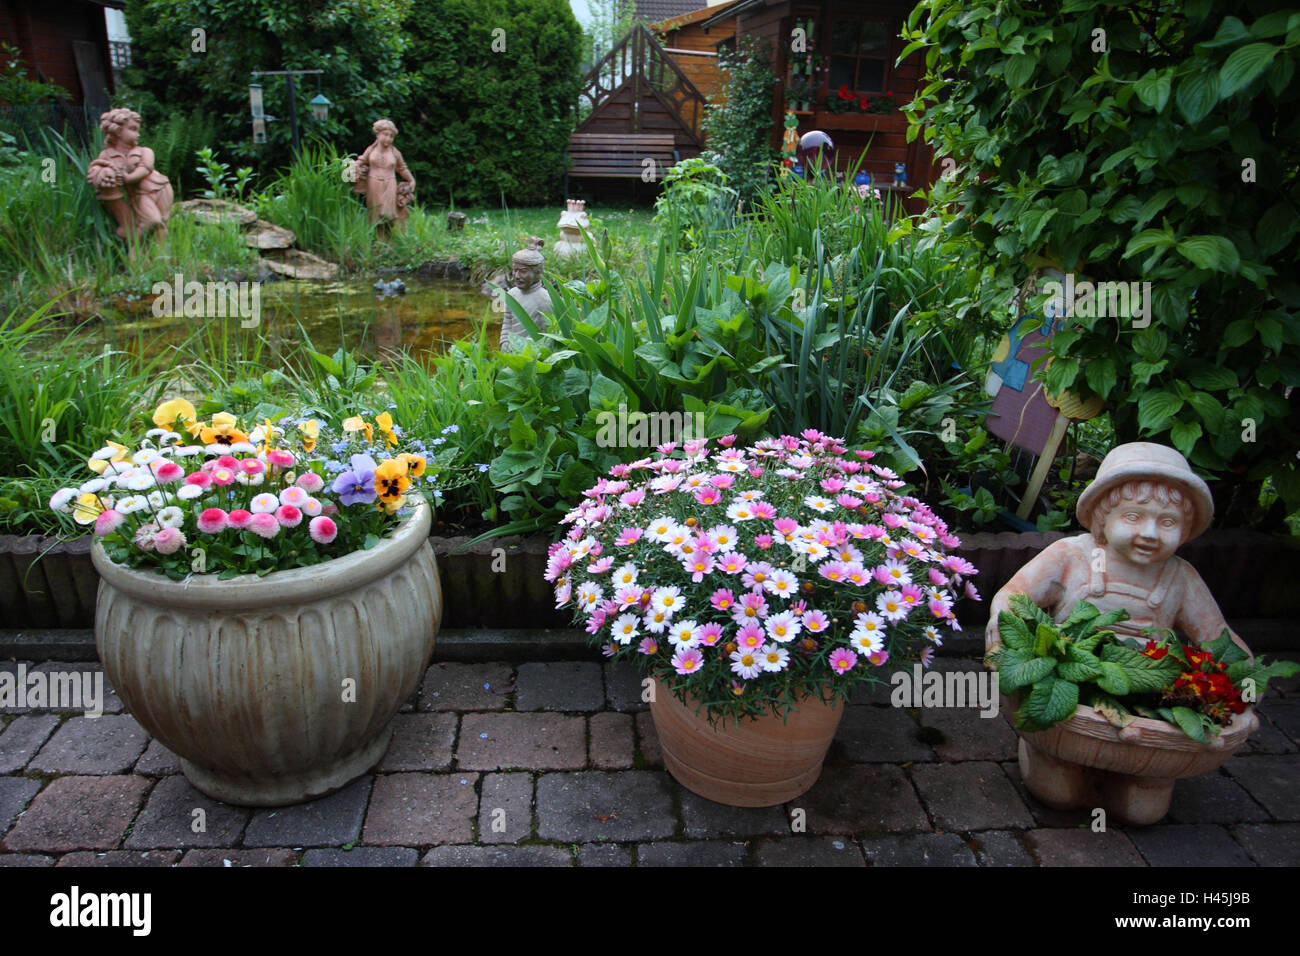 Superbe Garden With Flowers And Garden Figures,   Stock Image